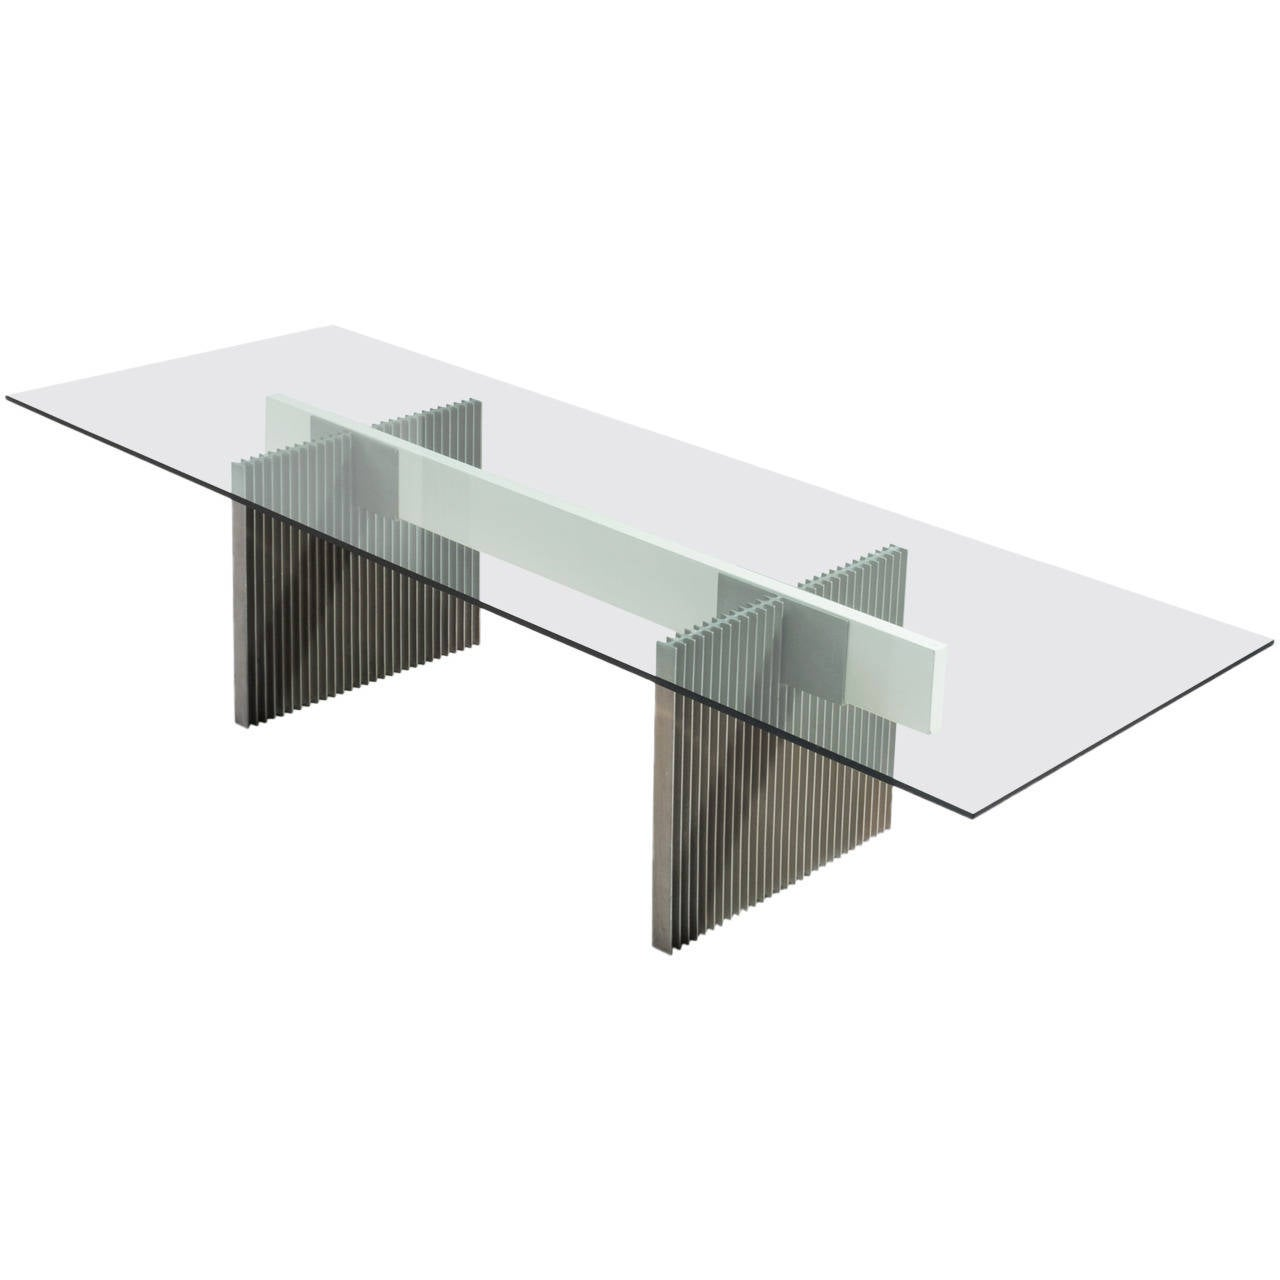 Large dining conference table with glass and metal base Metal table base